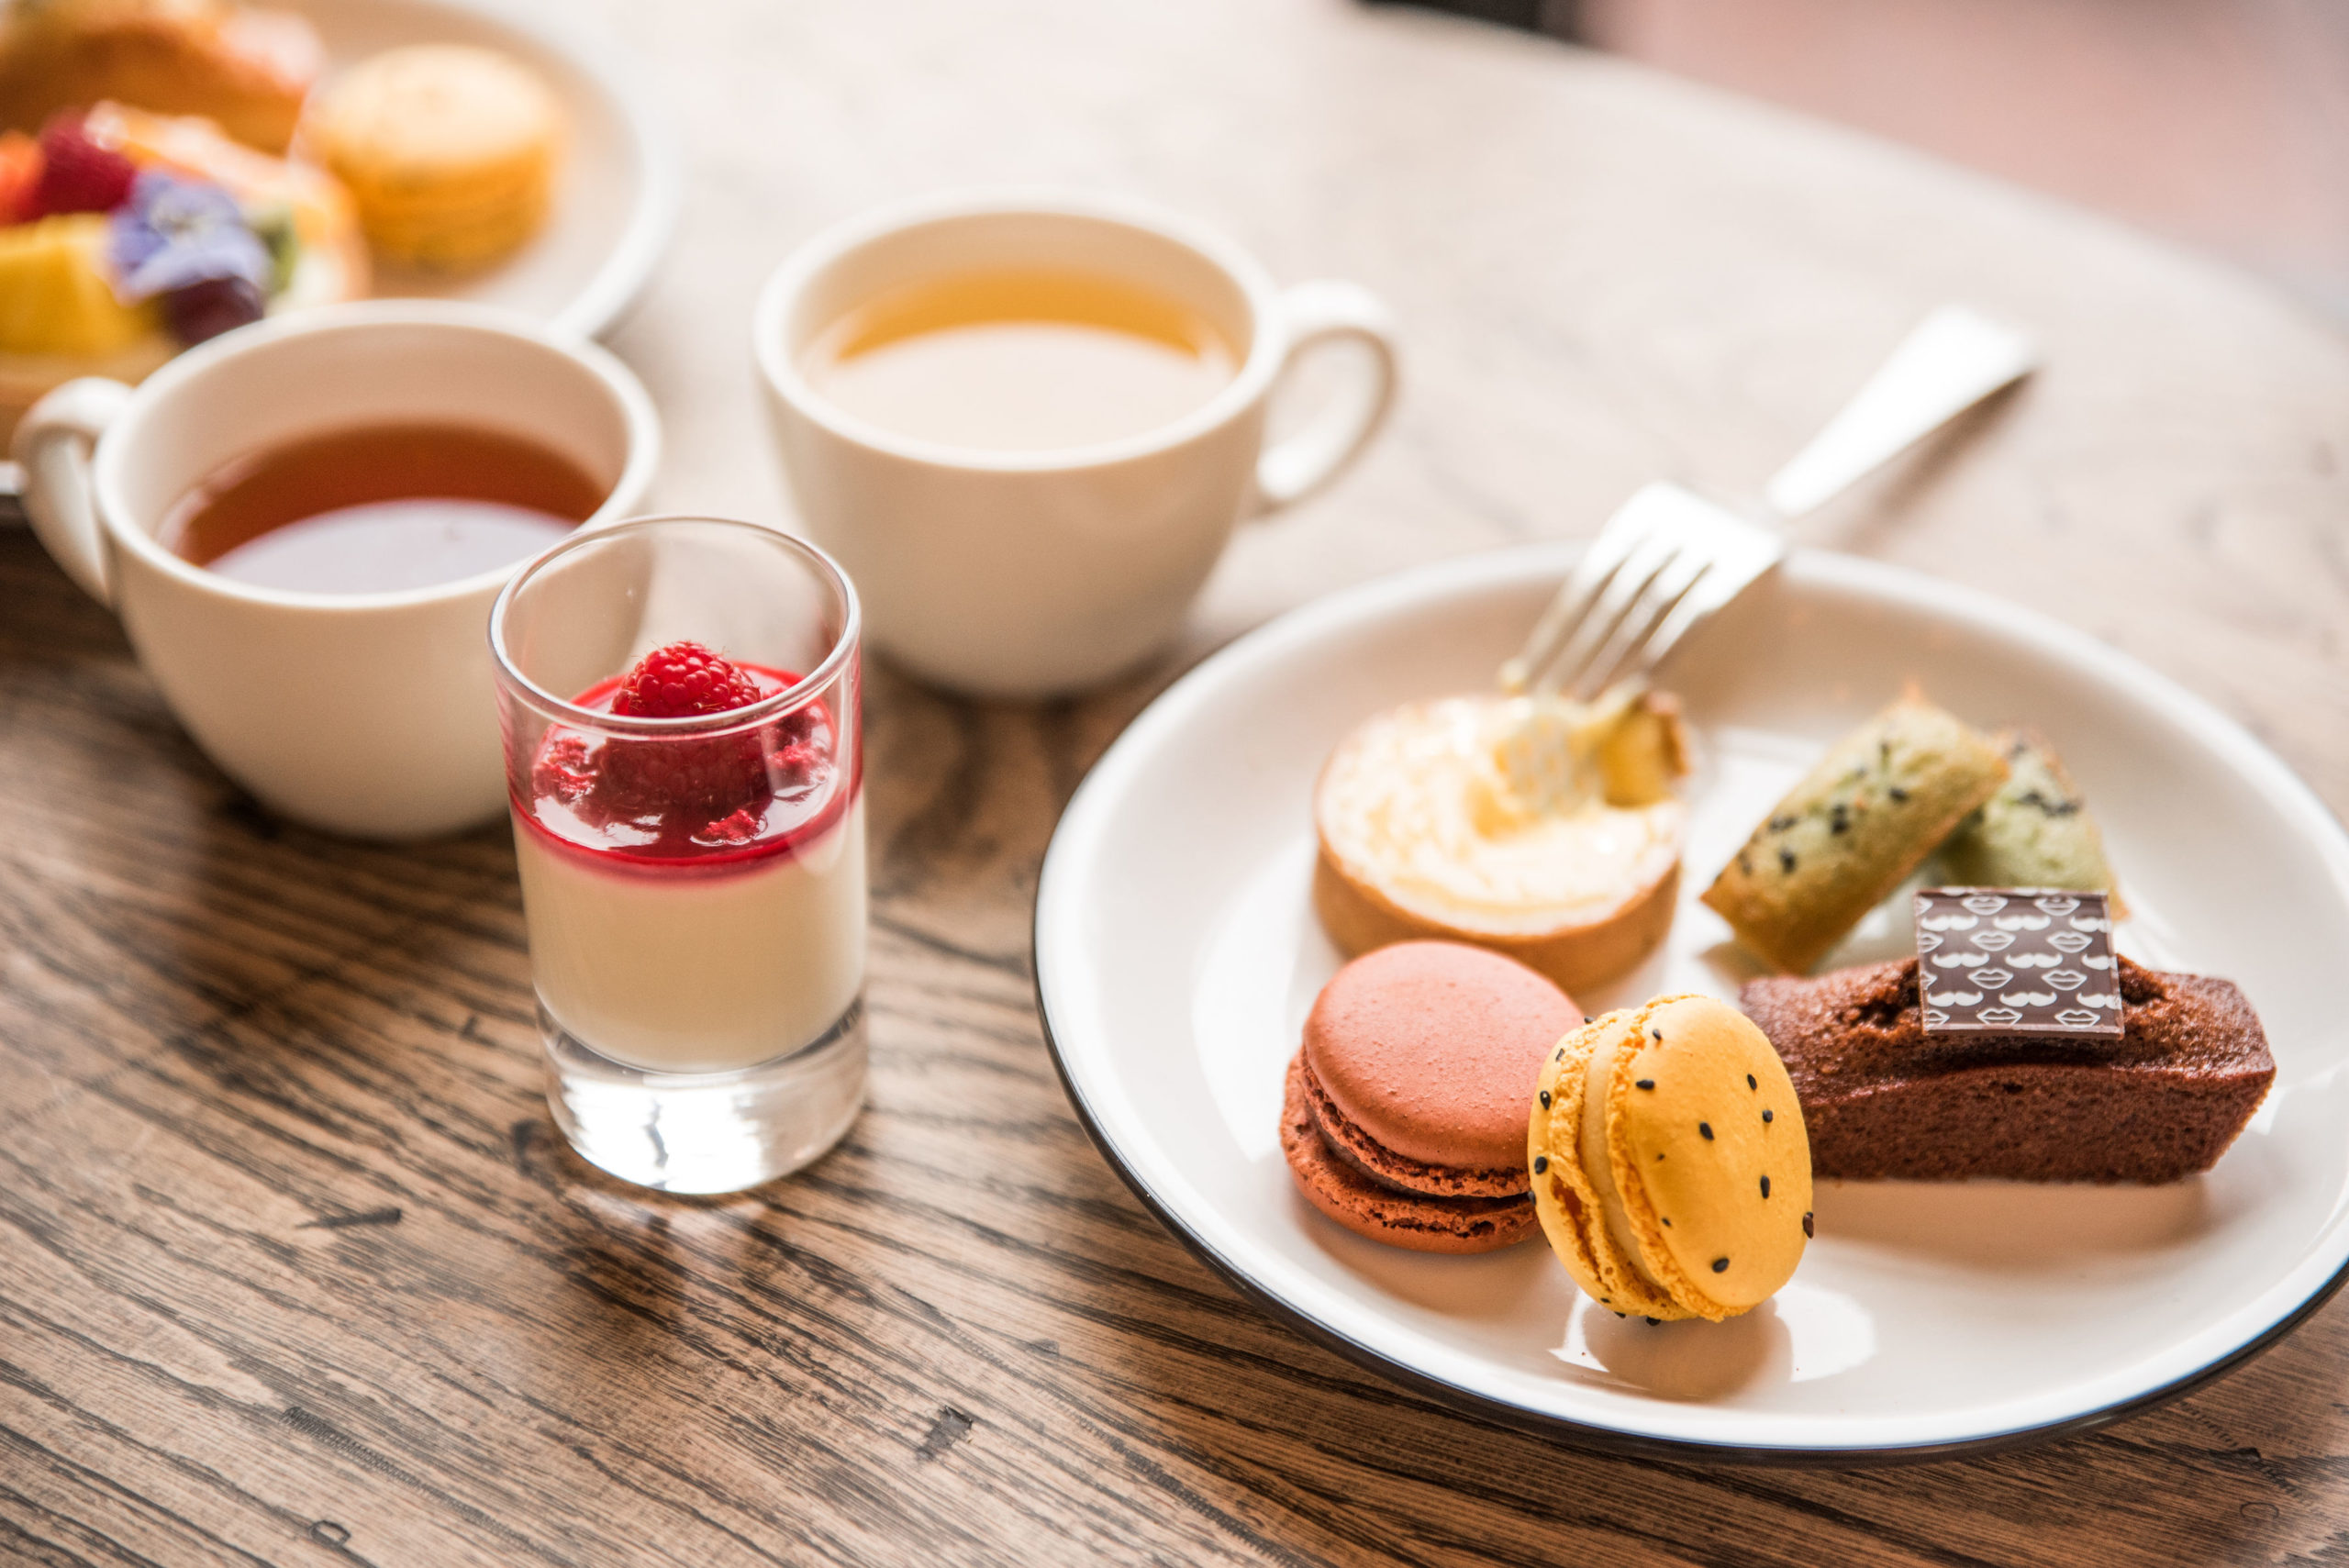 Macarons, a mini lemon tart, and financiers sit next to panna cotta and piping hot cups of tea.